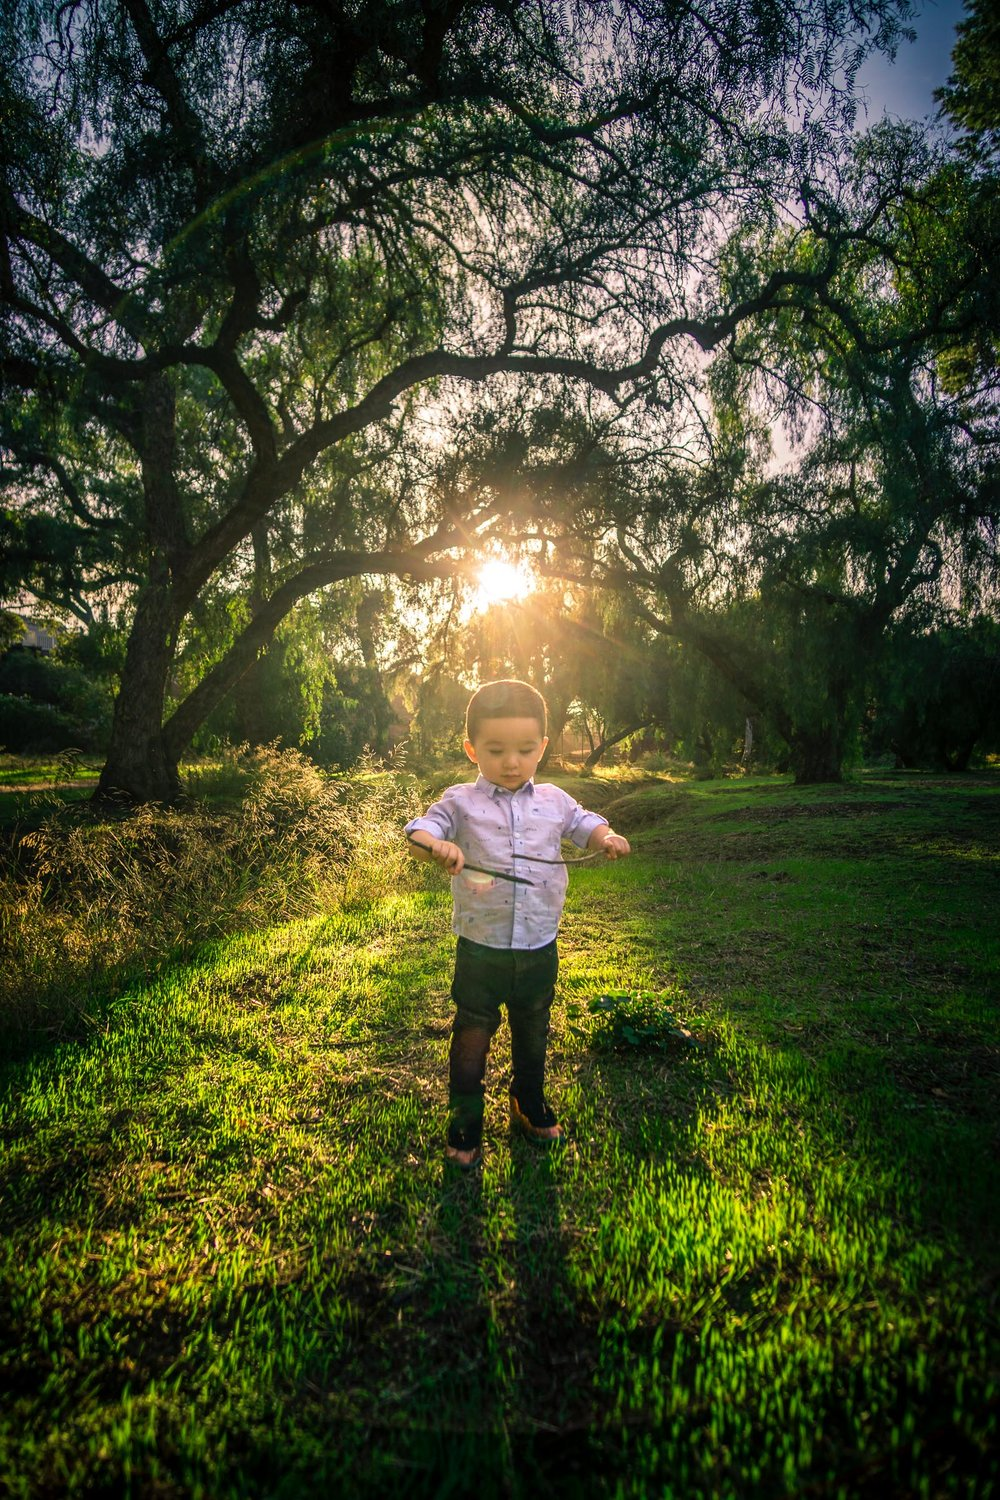 Candid portrait of a little boy playingduring a Family portrait photo shoot in Fullerton on the Juanita Cooke Hiking Trail with green trees and grass and the golden hour sun